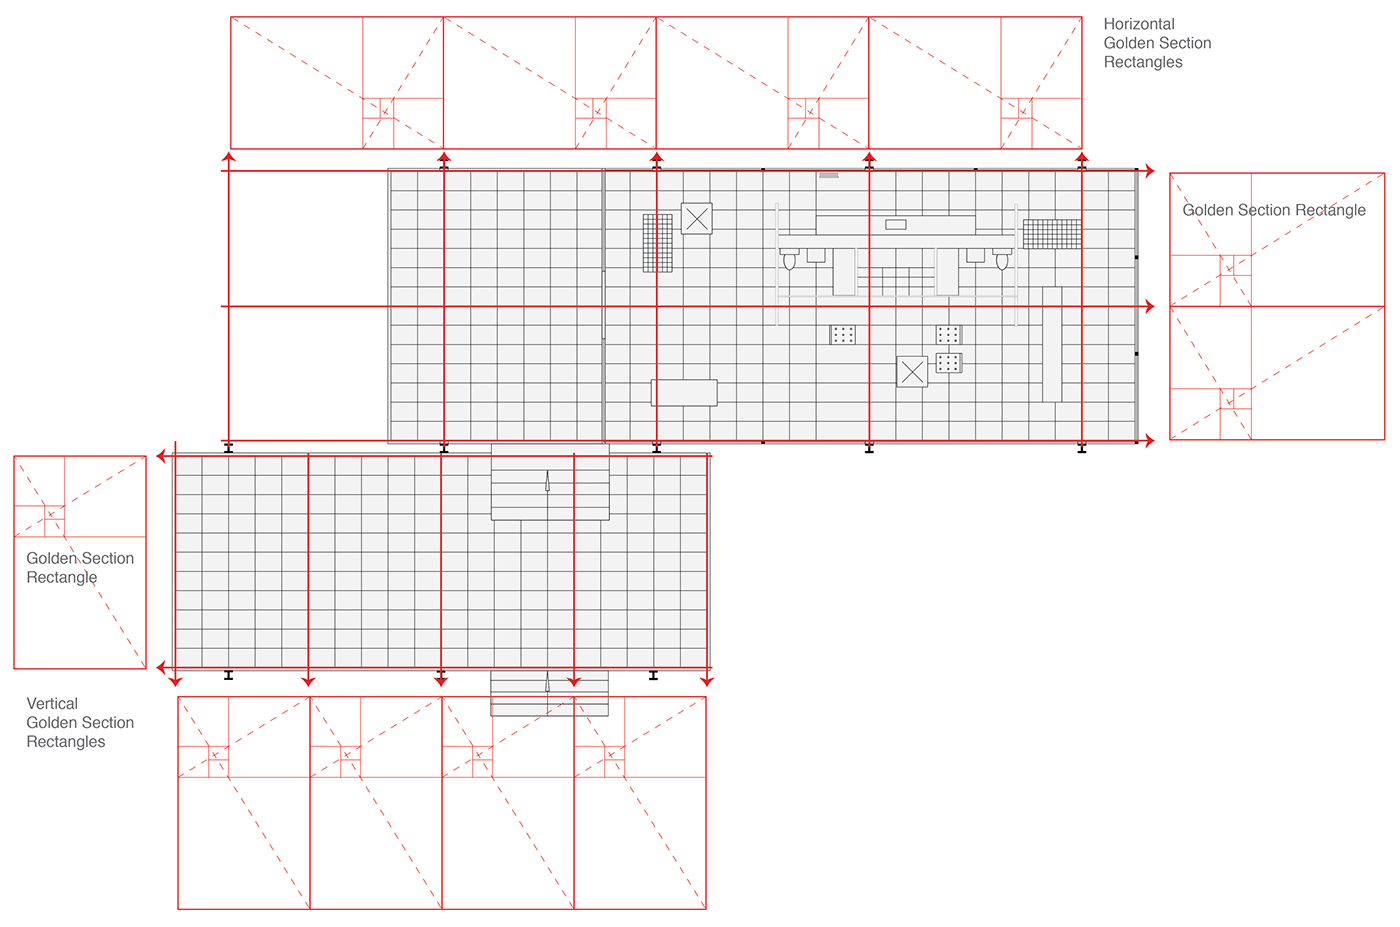 Van der rohe s farnsworth house geometric analysis on behance for Farnsworth house floor plan